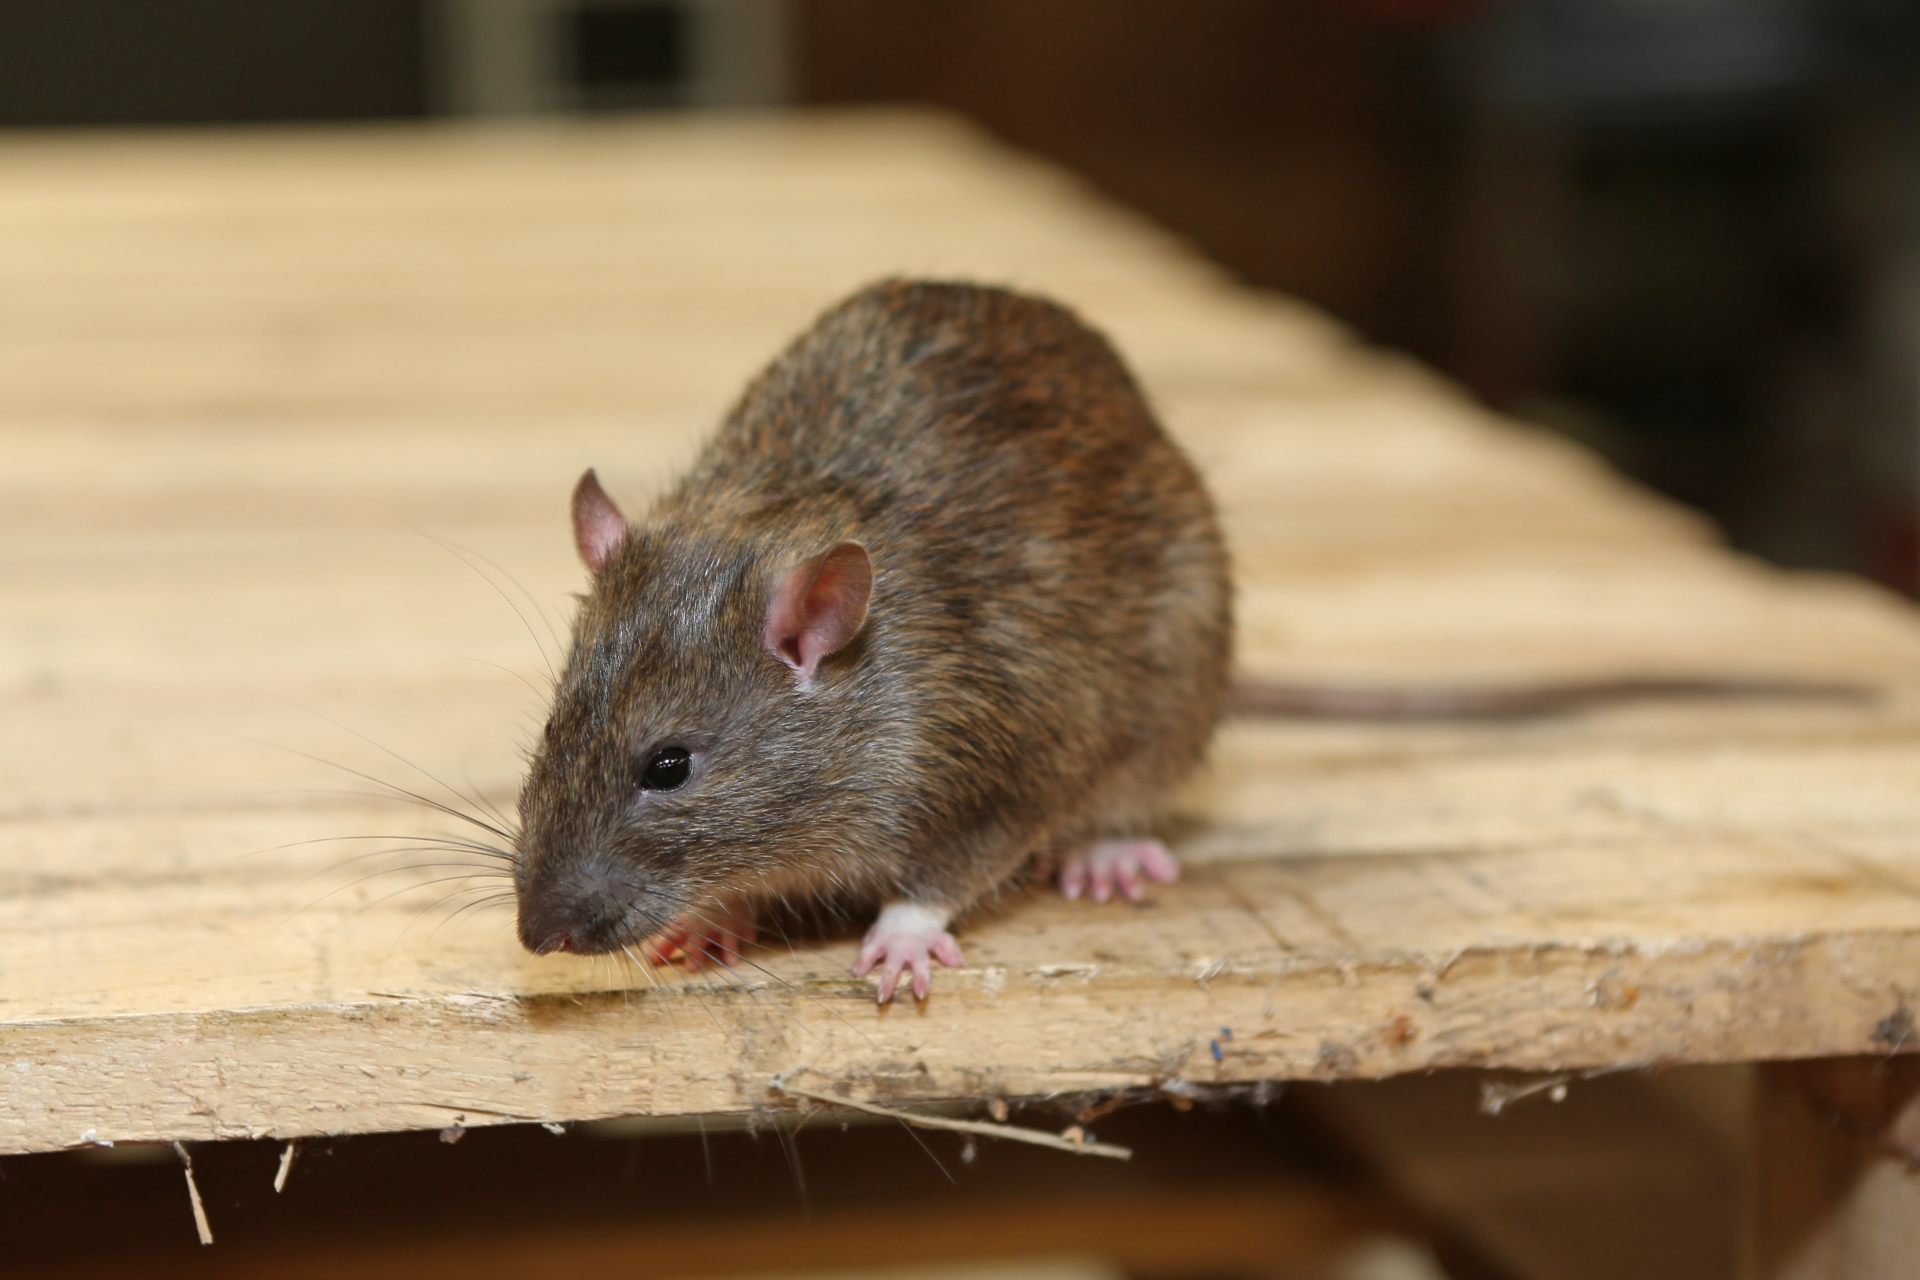 Rat Infestation, Pest Control in Earlsfield, SW18. Call Now 020 8166 9746